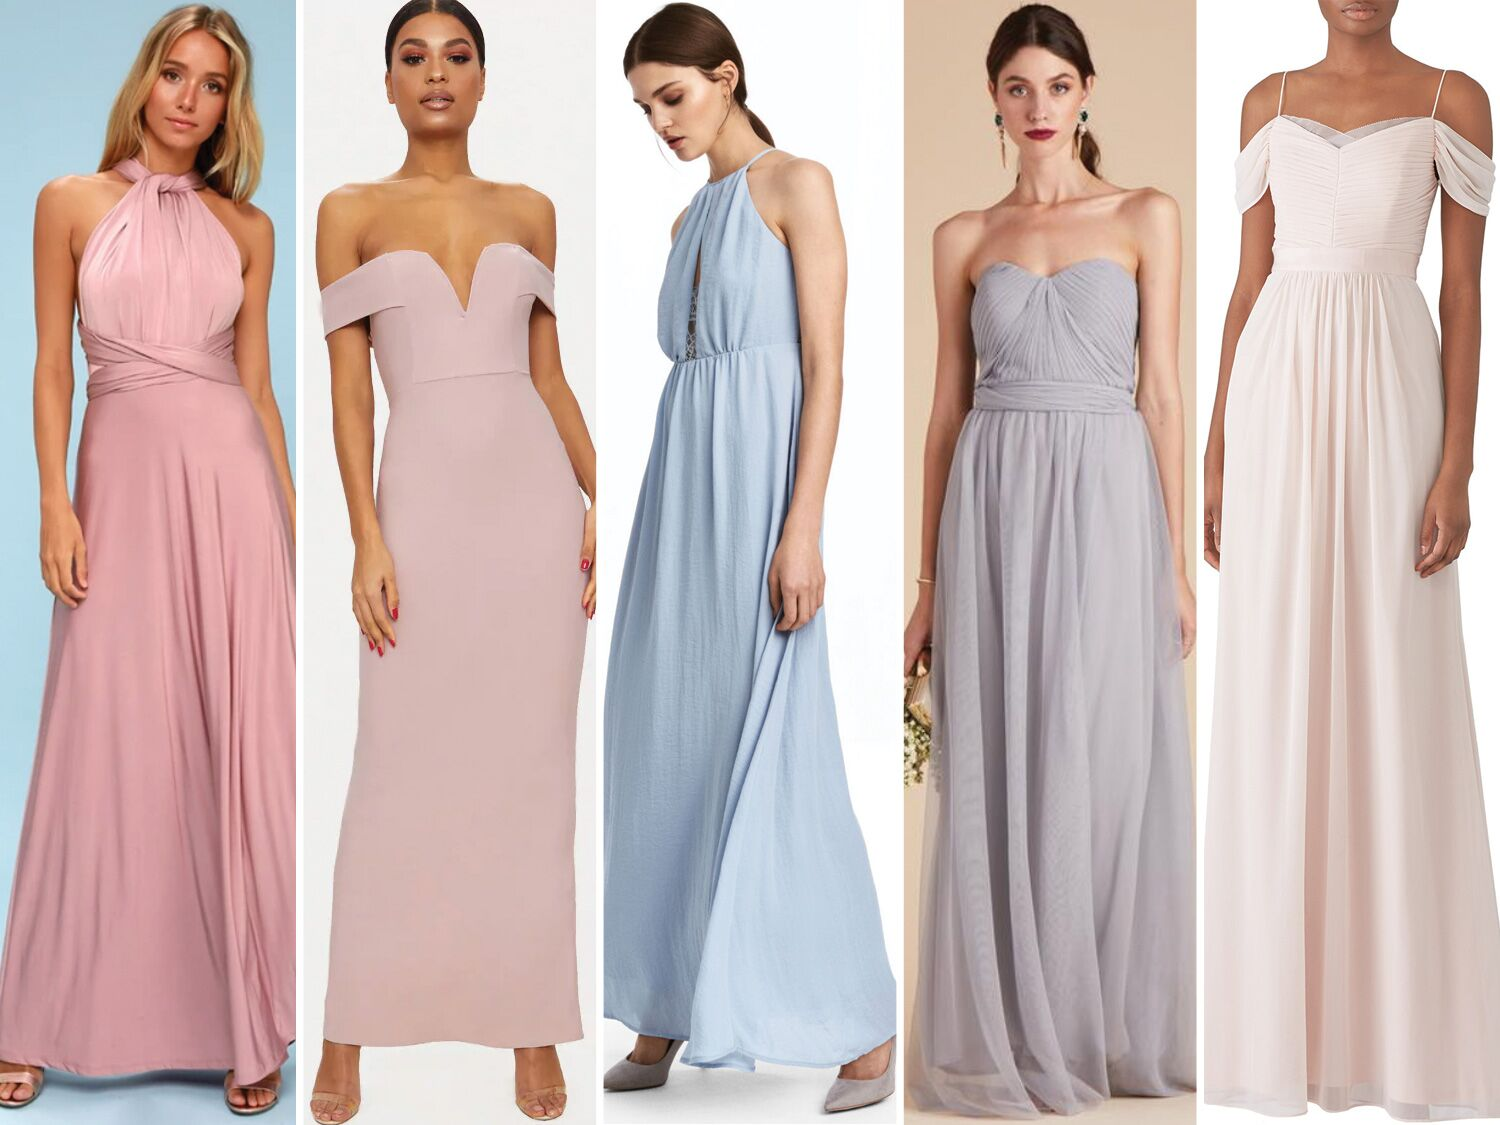 14 Affordable Bridesmaid Dresses That Dont Look Cheap and Nasty